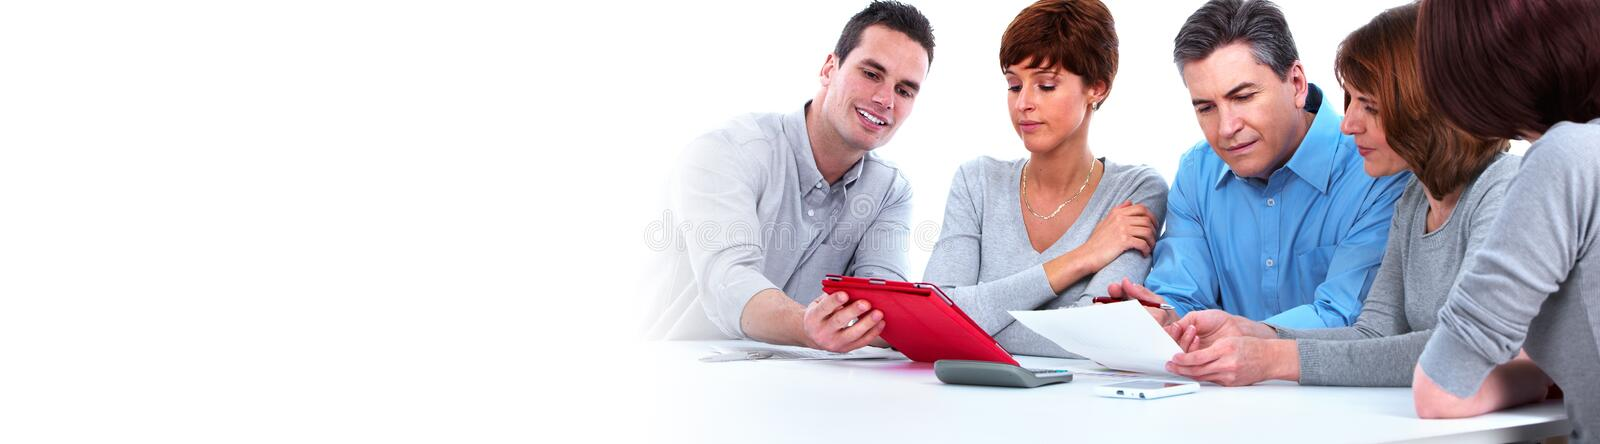 Business team. Business people group working. Financial service concept stock photography